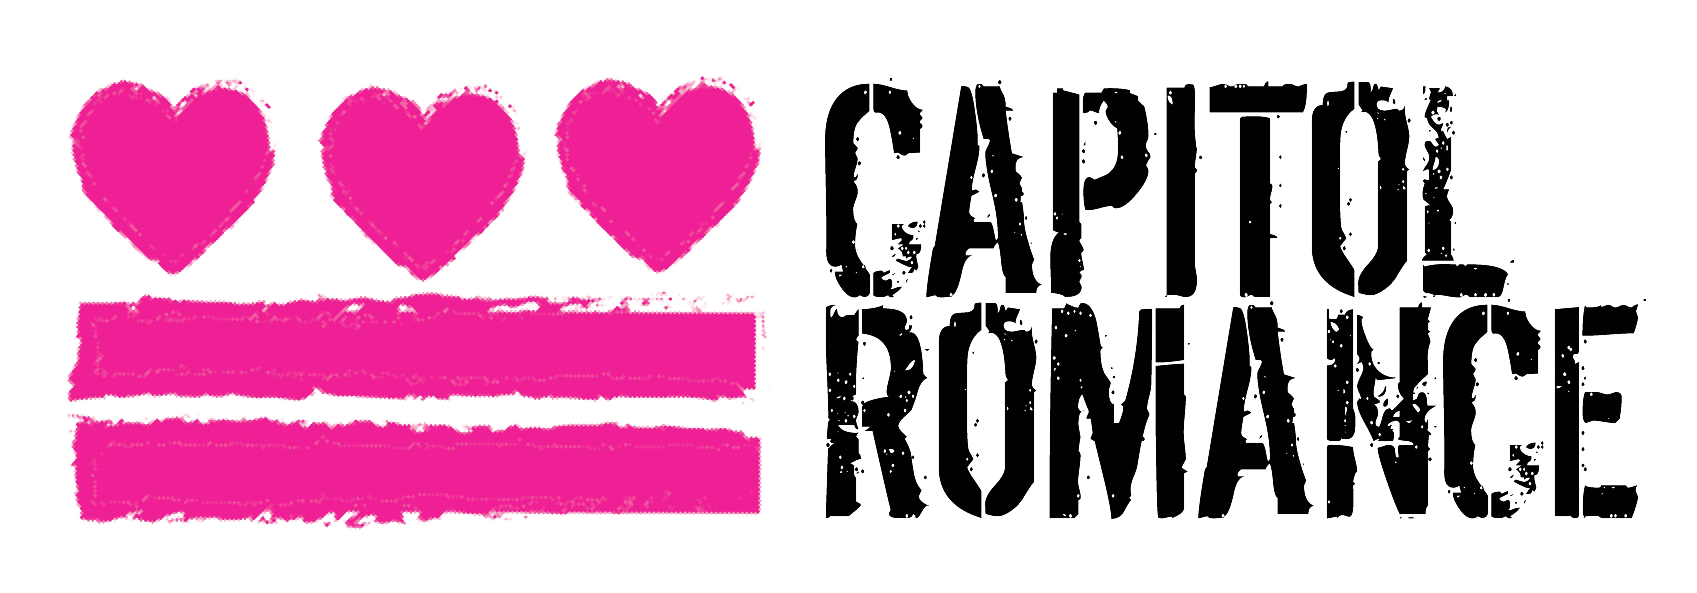 capital romance logo.png